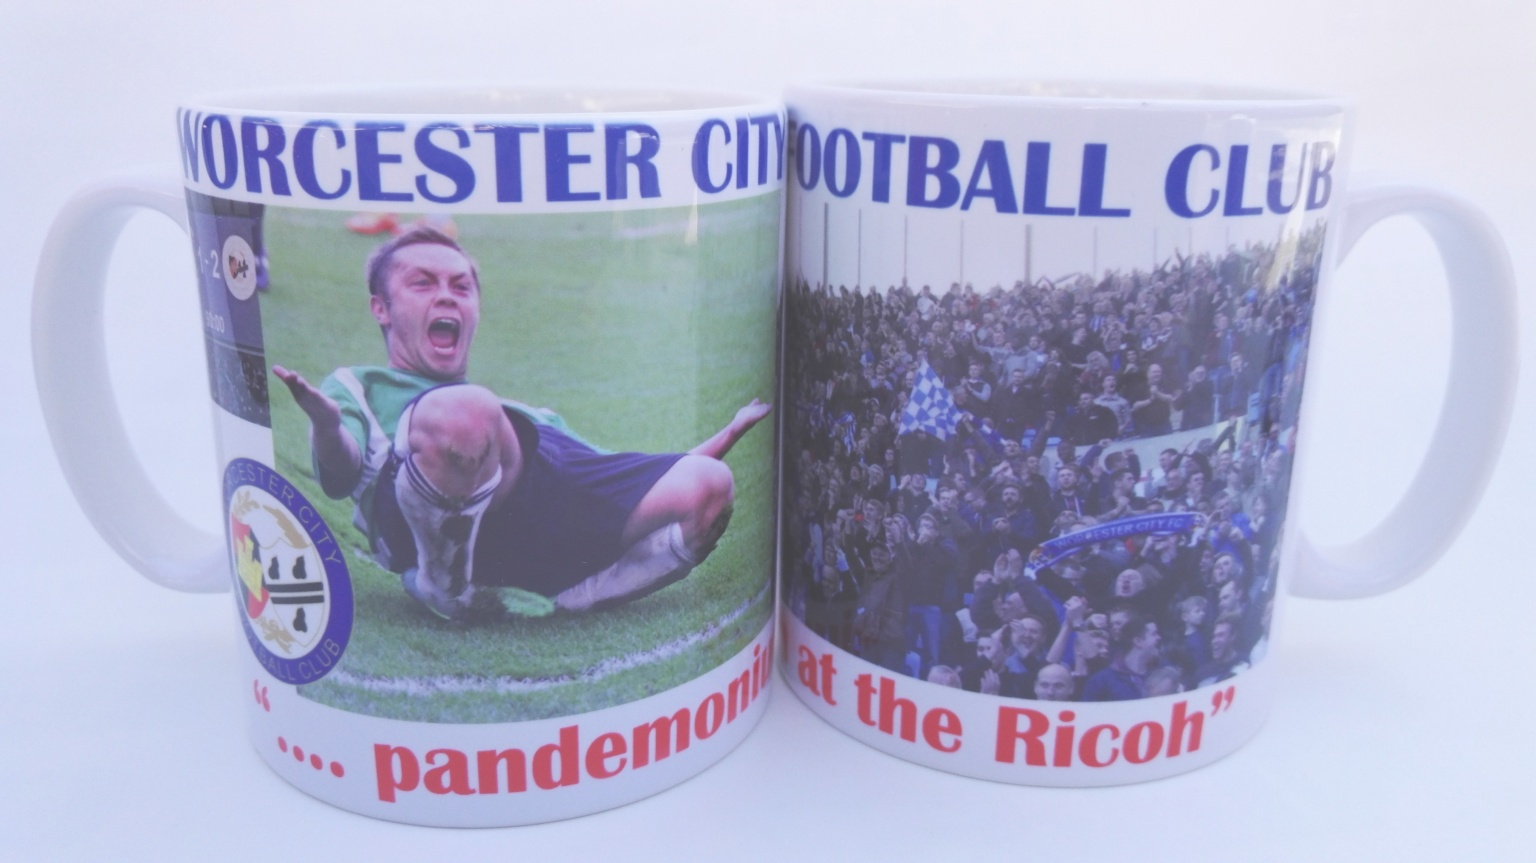 Image: Pandemonium At The Ricoh Mug